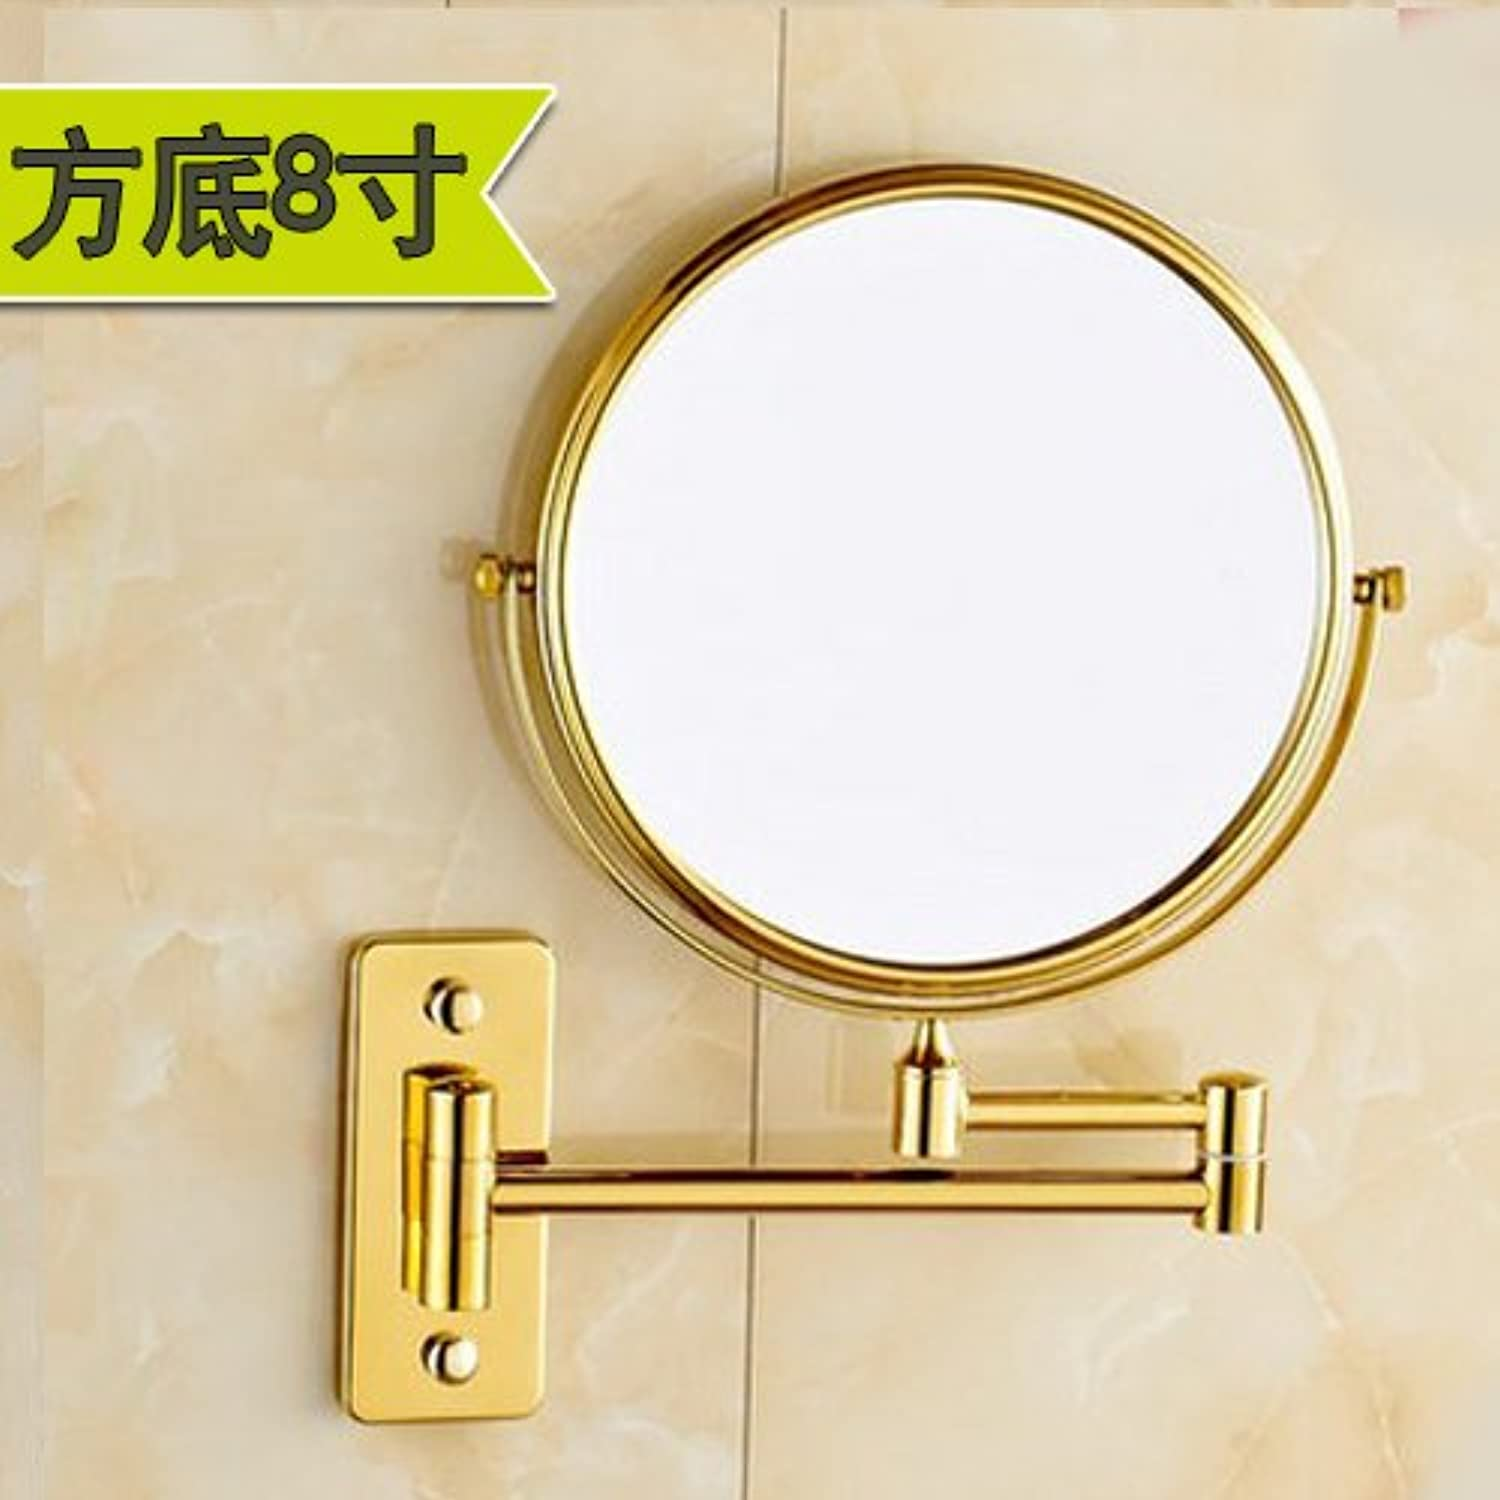 Continental gilt mirror bathroom mirror copper and double-sided folding magnifying endoscopy wall mount makeup mirror 1. gold-plated copper